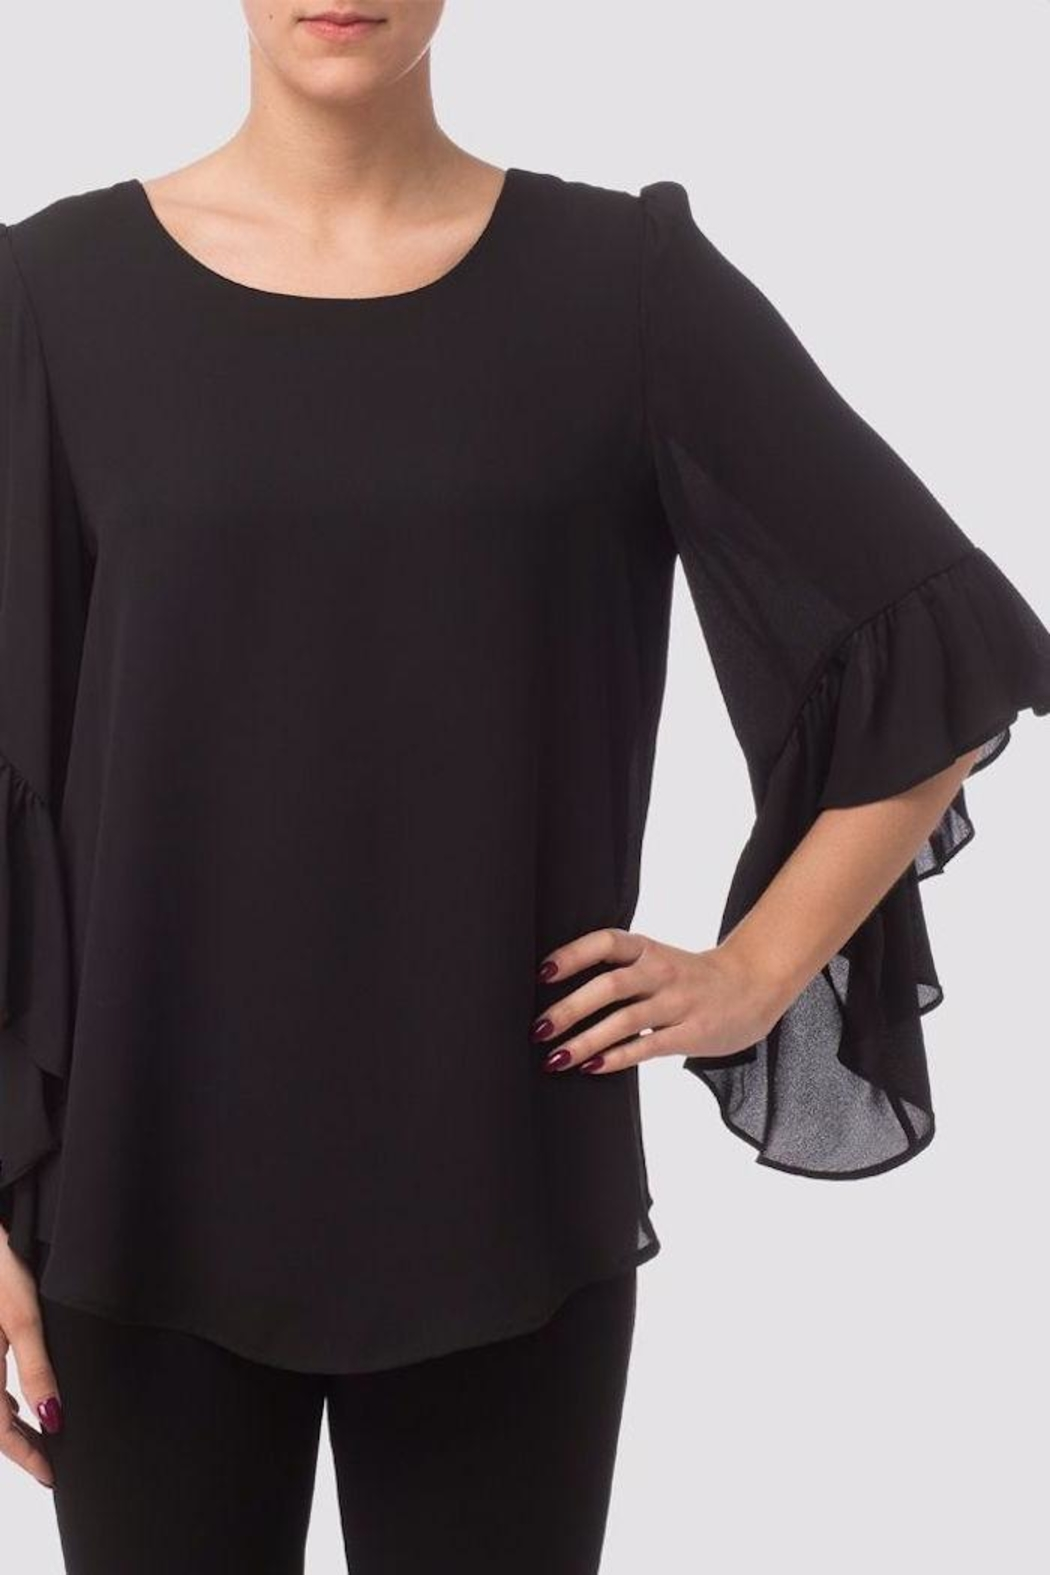 Joseph Ribkoff Ruffle Bell-Sleeve Blouse - Front Cropped Image